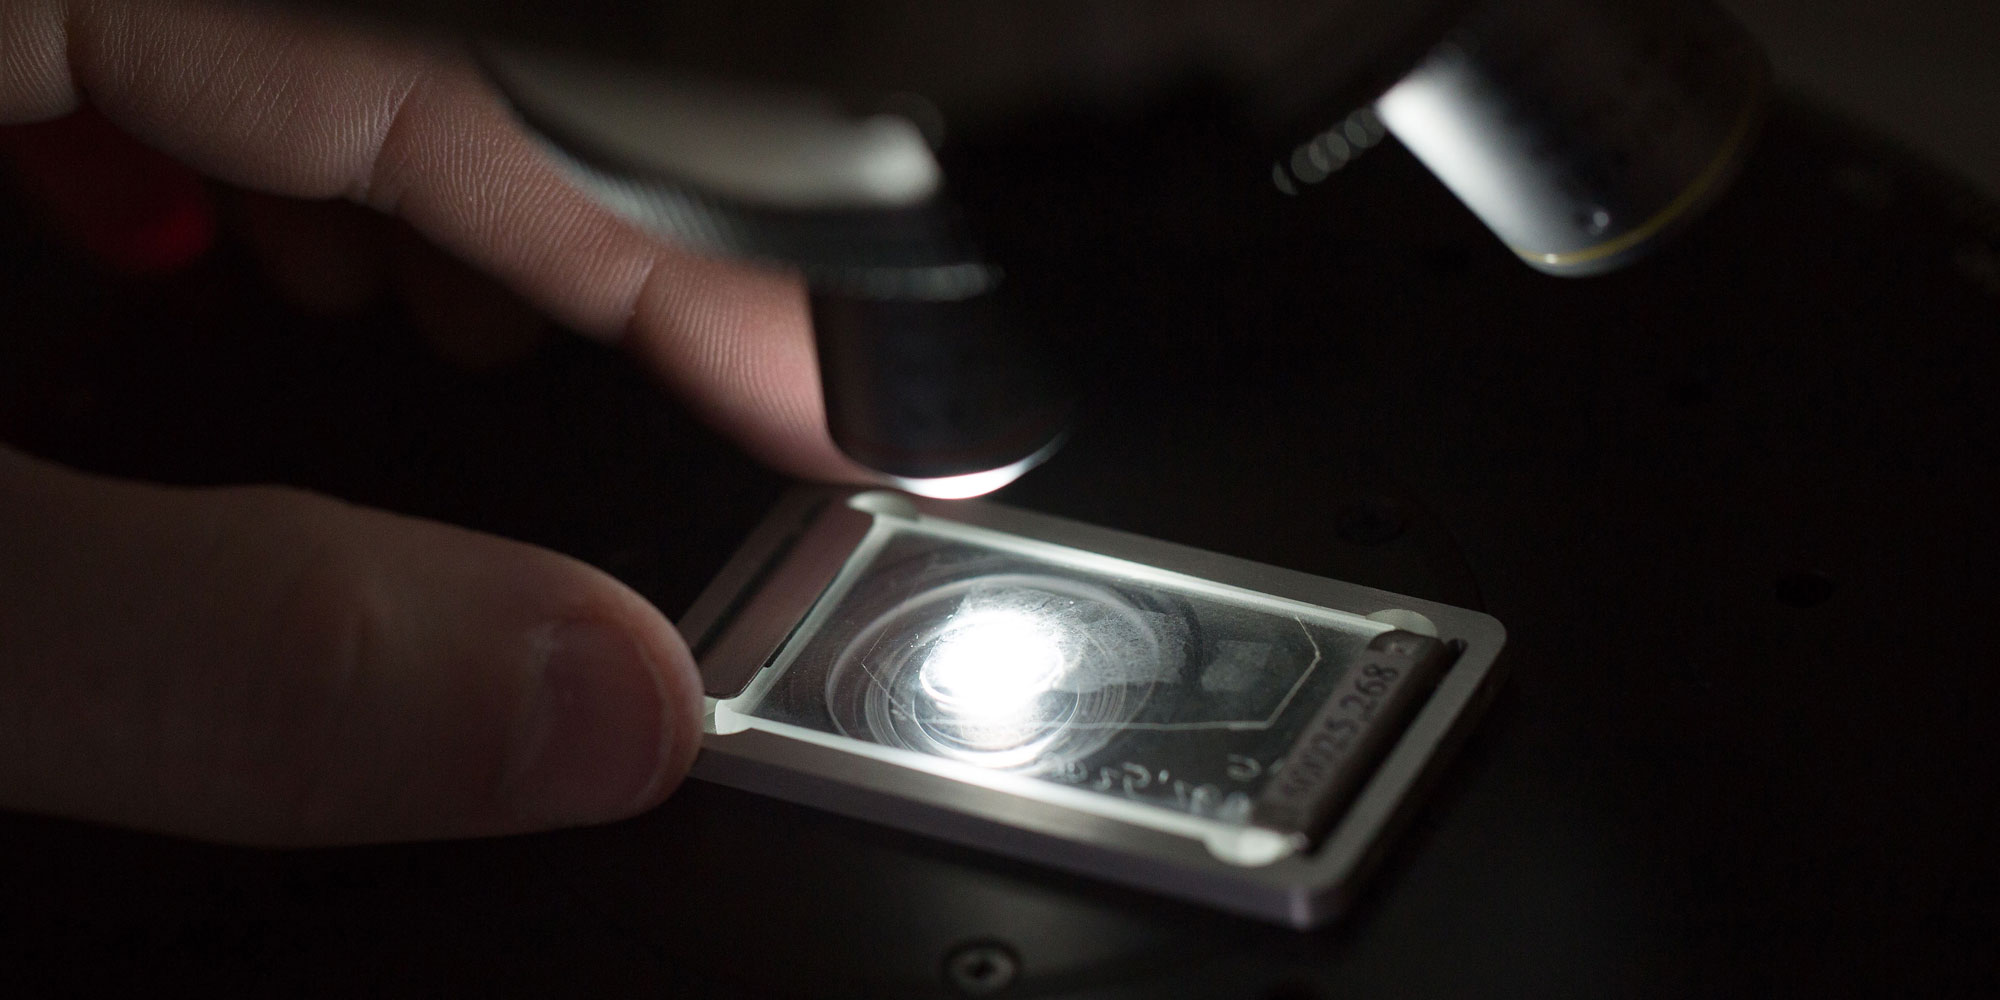 Moon rock being examined under microscope with a shining light in the dark